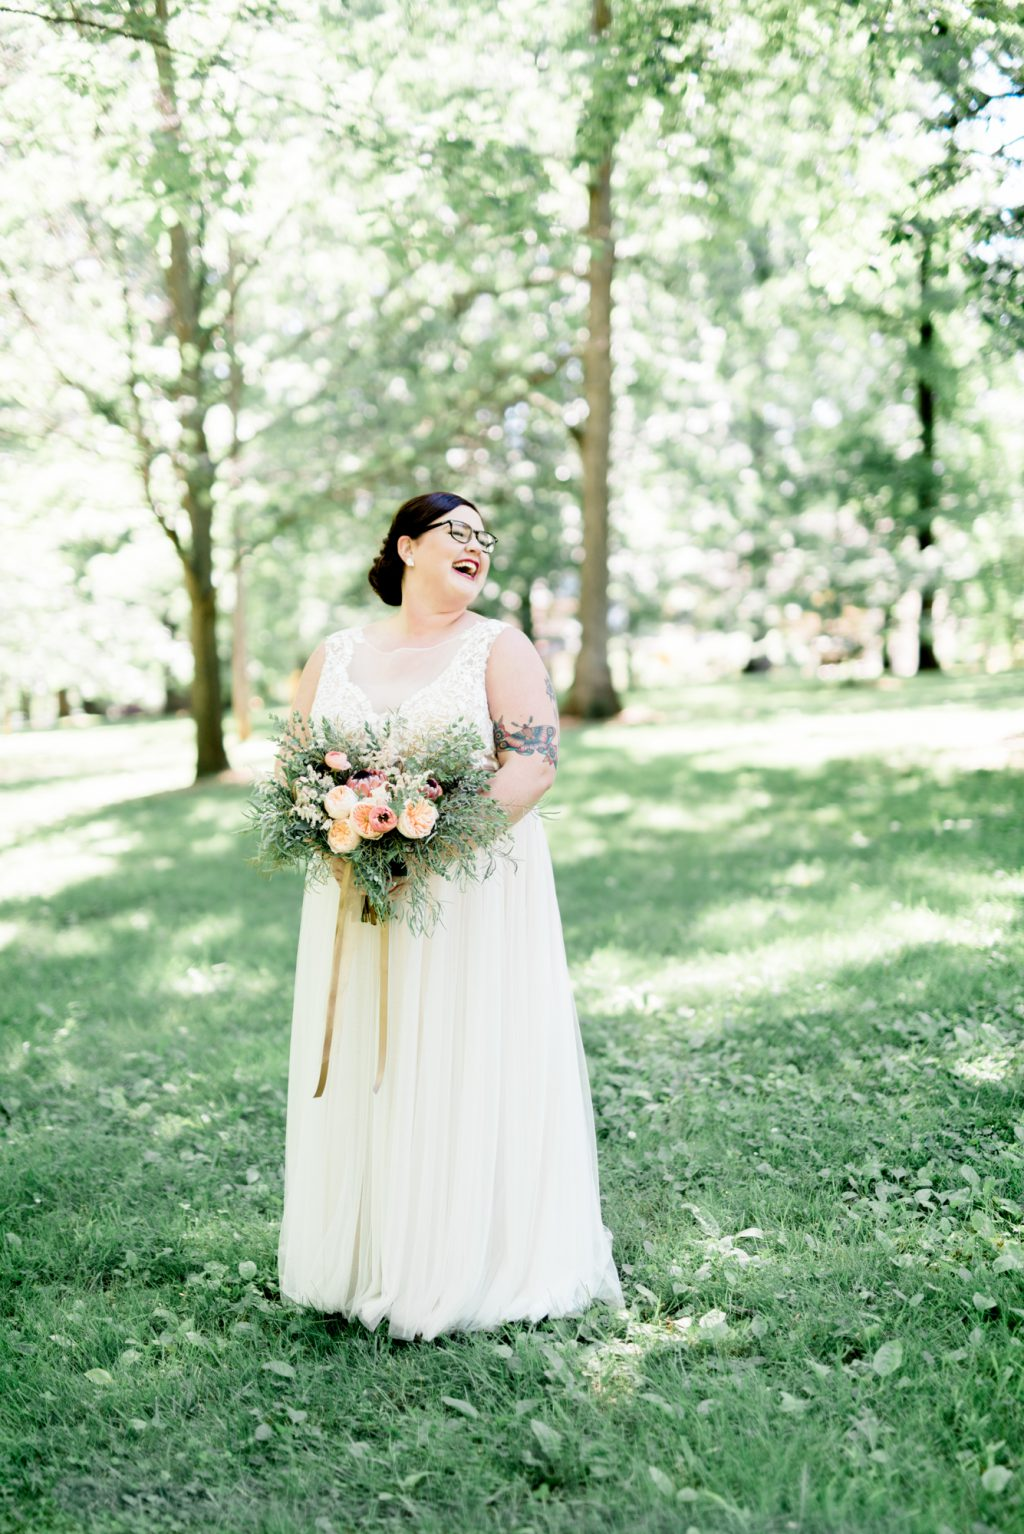 haley-richter-photo-west-chester-summer-wedding-boxcar-brewery-051